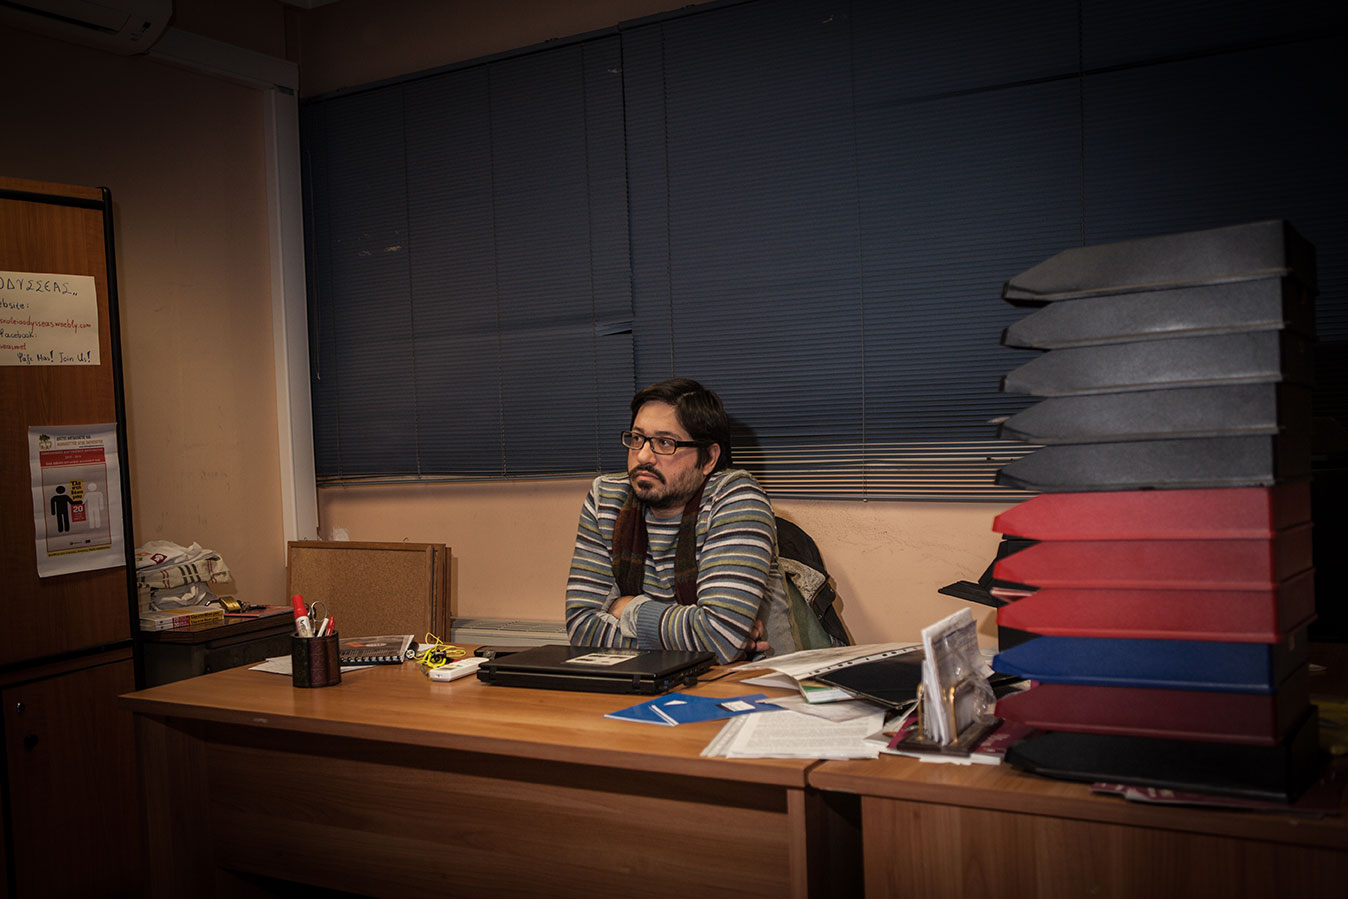 """Secondary school Greek teacher and pro bono President of the Odysseas Community School, Antoni Gazakis, recently came close to losing his position. Following an audit, the struggling NGO, Odysseas, was accused of """"not respecting accounting norms."""" The NGO still owes the State 78,000 € ($85,000) in fines, which jeopardizes its survival. In light of the Greek authorities' notoriously lackluster attempts at curtailing tax evasion, the mere fact that a project such as Odysseas would be targeted is as ridiculous as it is shameful. Though Syriza supported the NGO while the party was in opposition, its representatives have taken no measure on Odysseas' behalf since they have been running the government."""